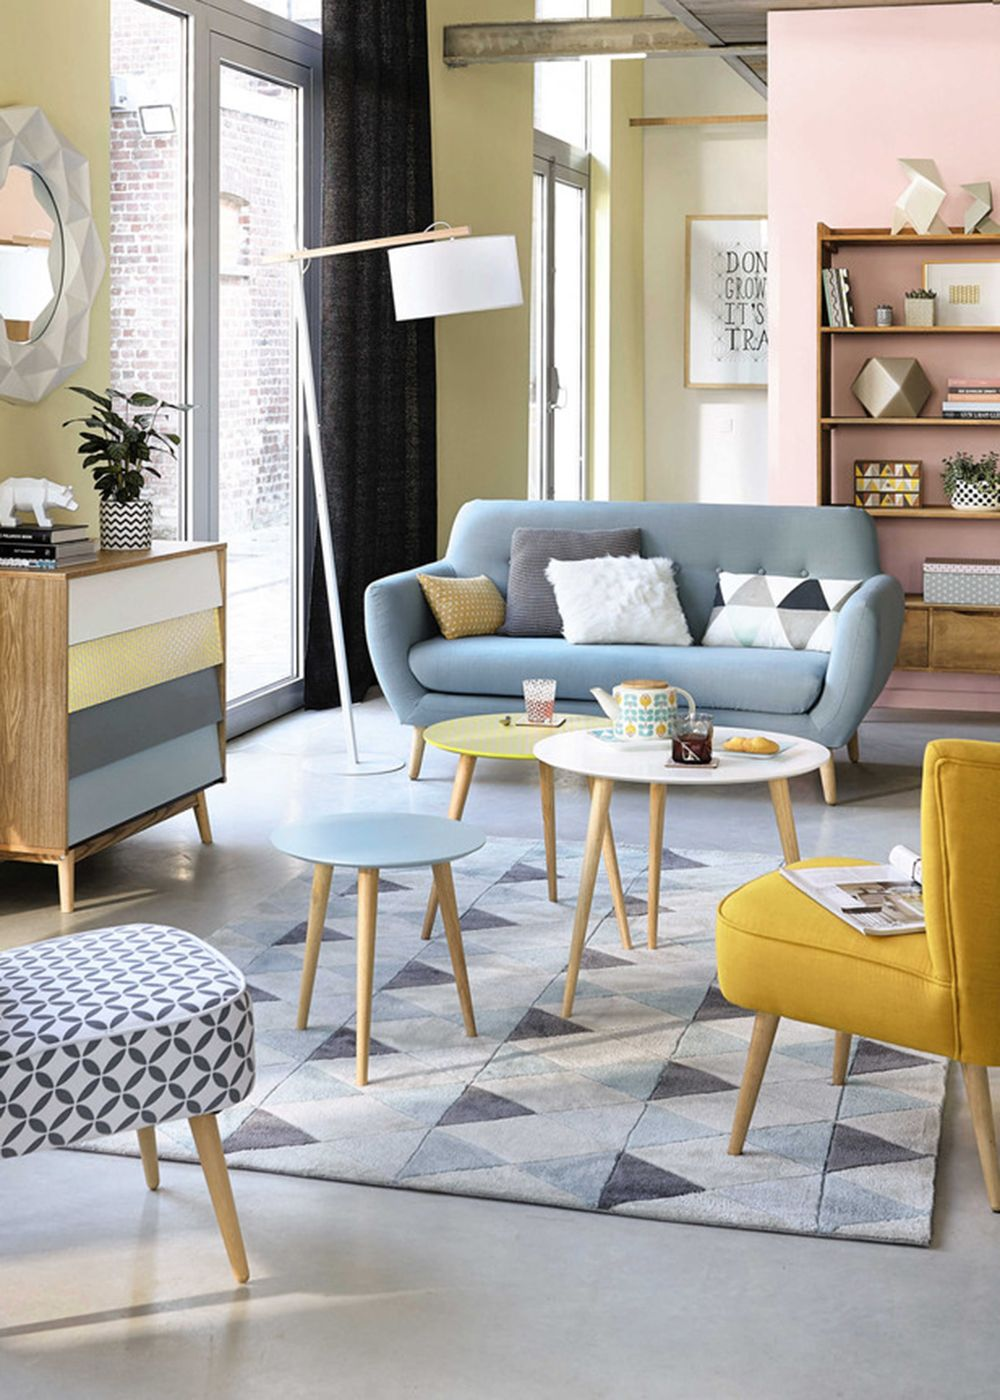 Wunderbar Pastel Living Room Inspiration With Scandinavian Style | Maisons Du Monde